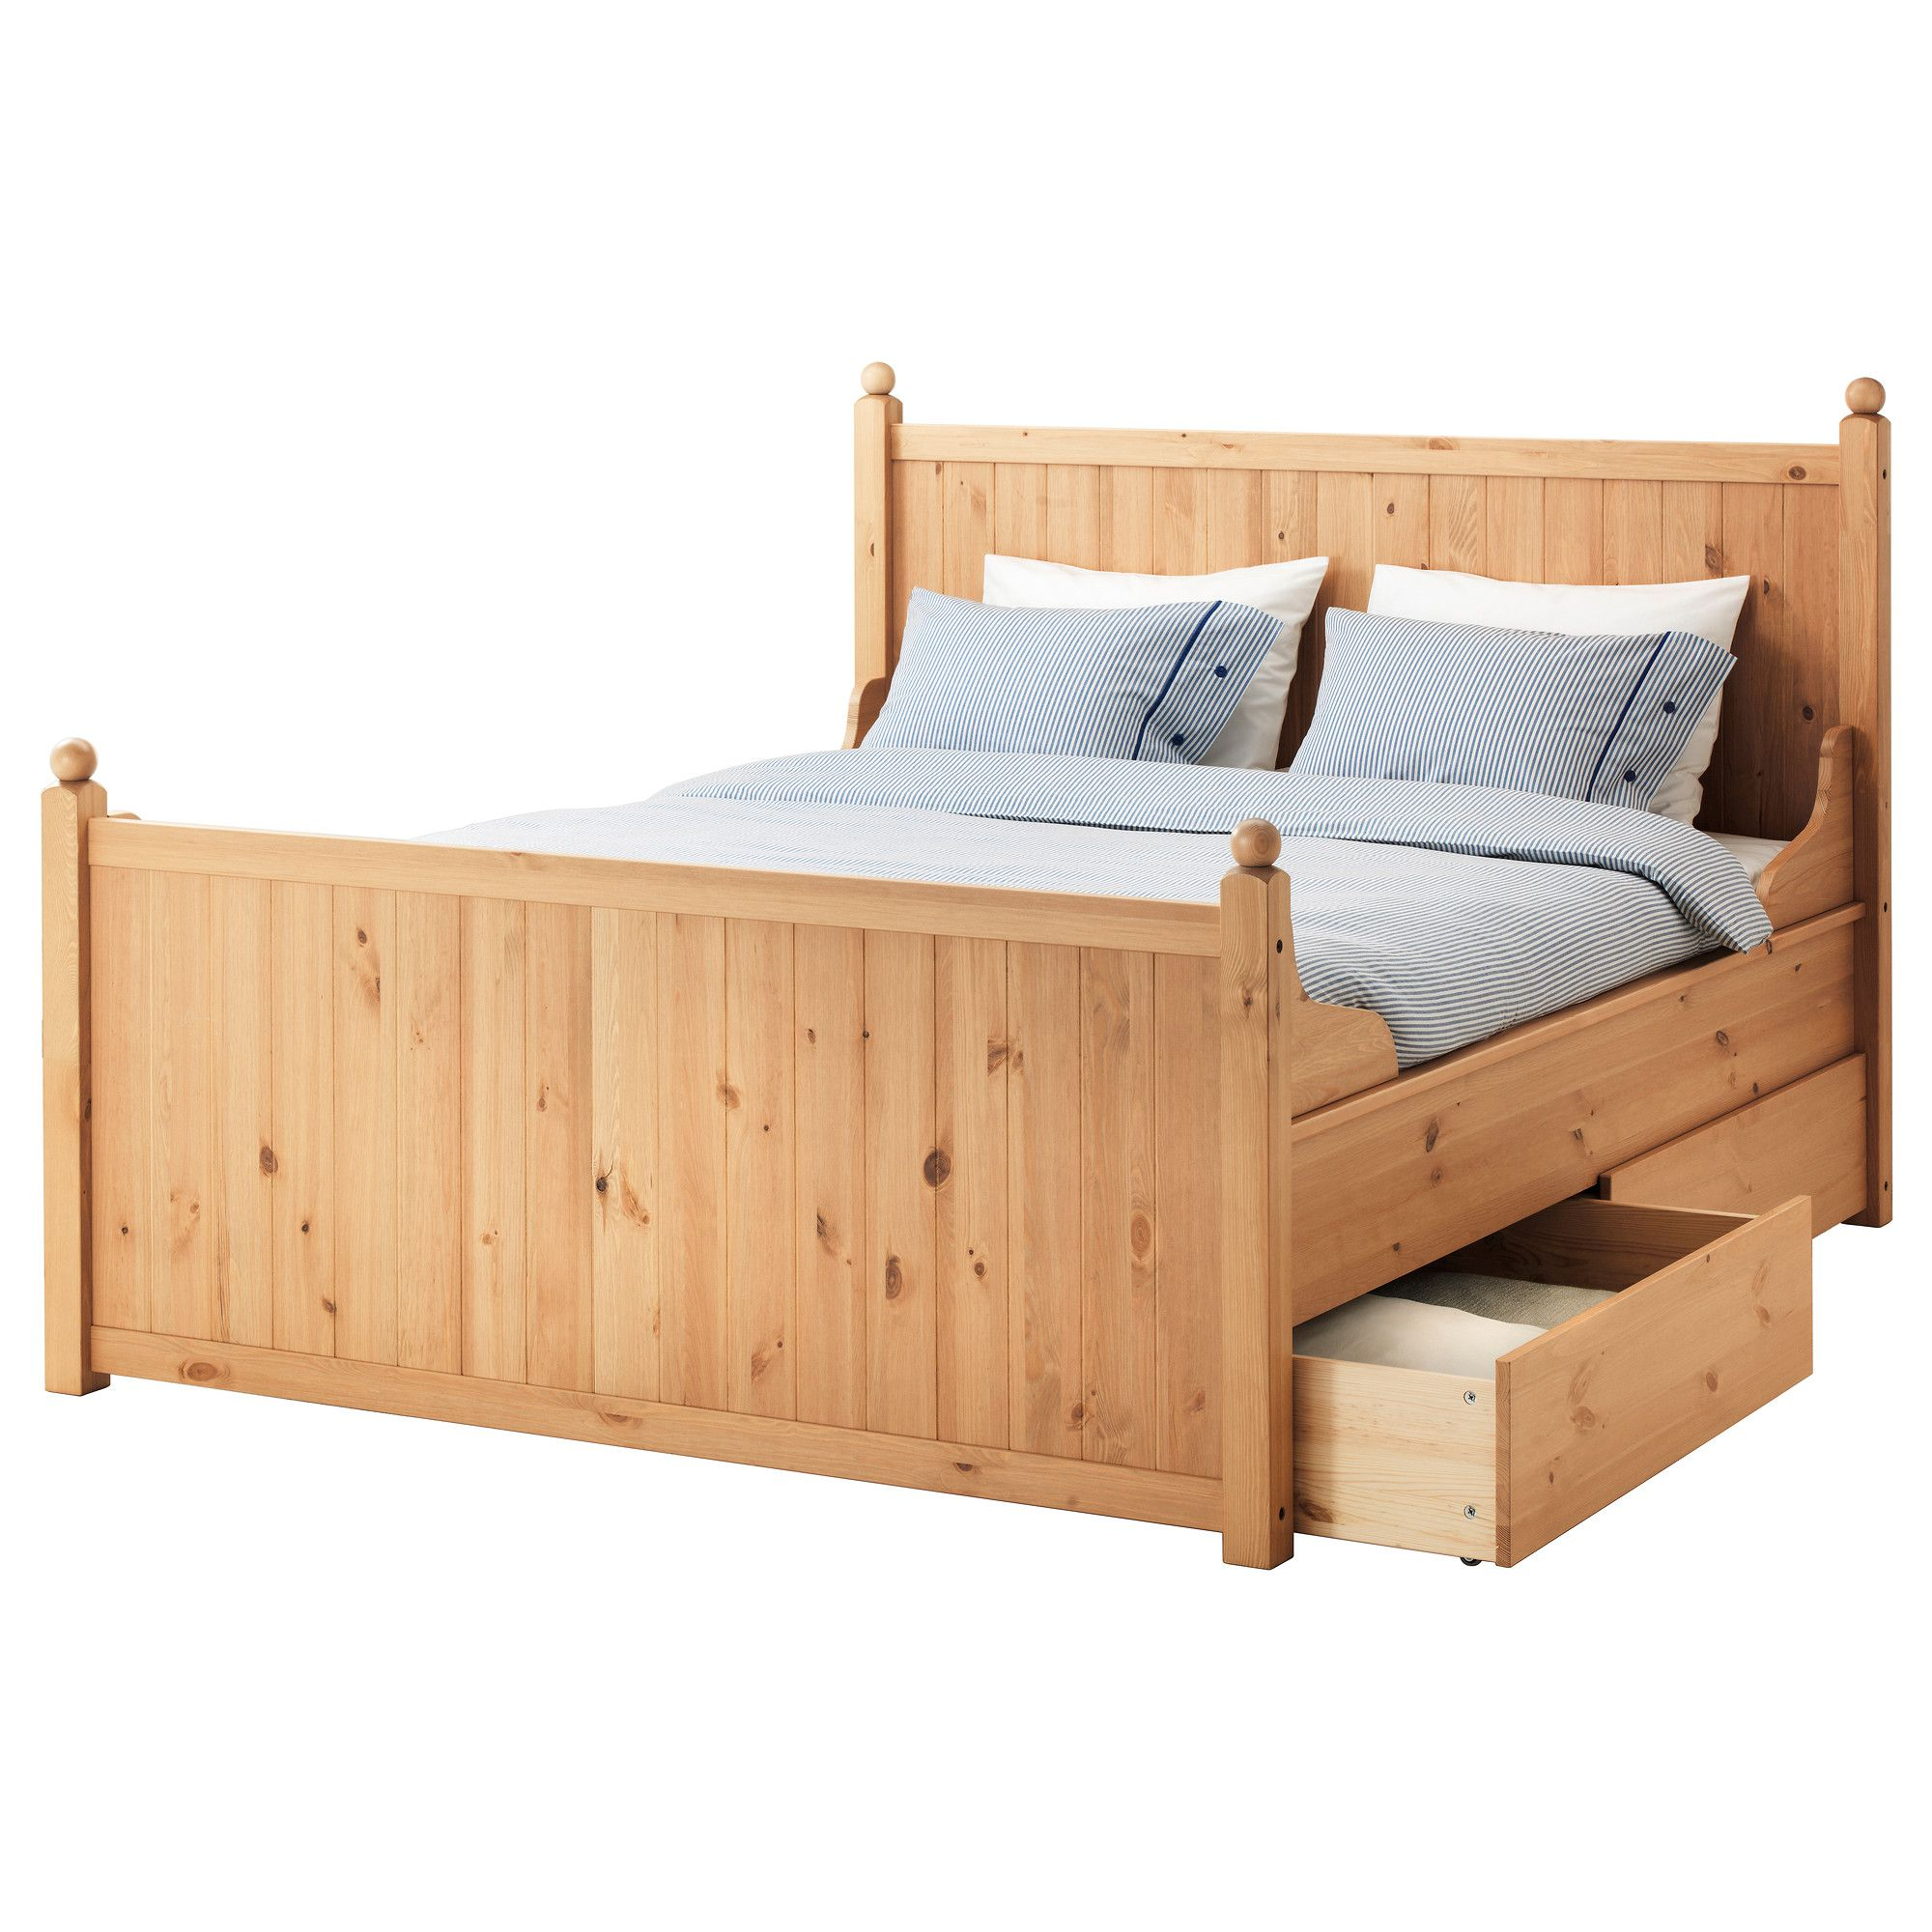 Best Us Furniture And Home Furnishings Ikea Bed Bed Frame 640 x 480